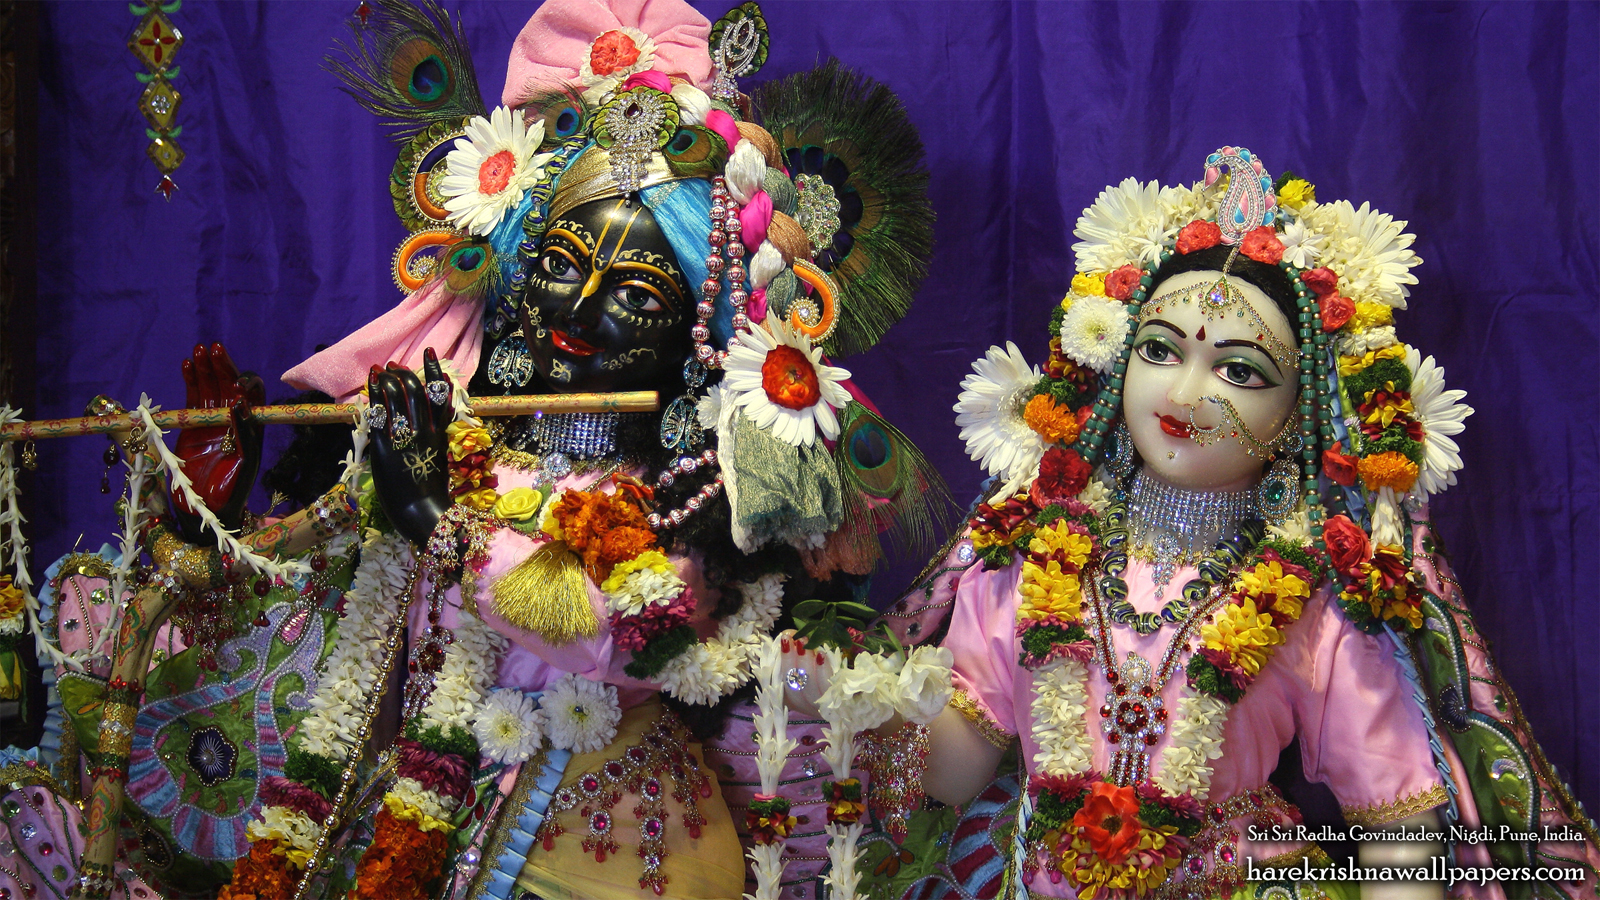 Sri Sri Radha Govind Close up Wallpaper (013) Size 1600x900 Download